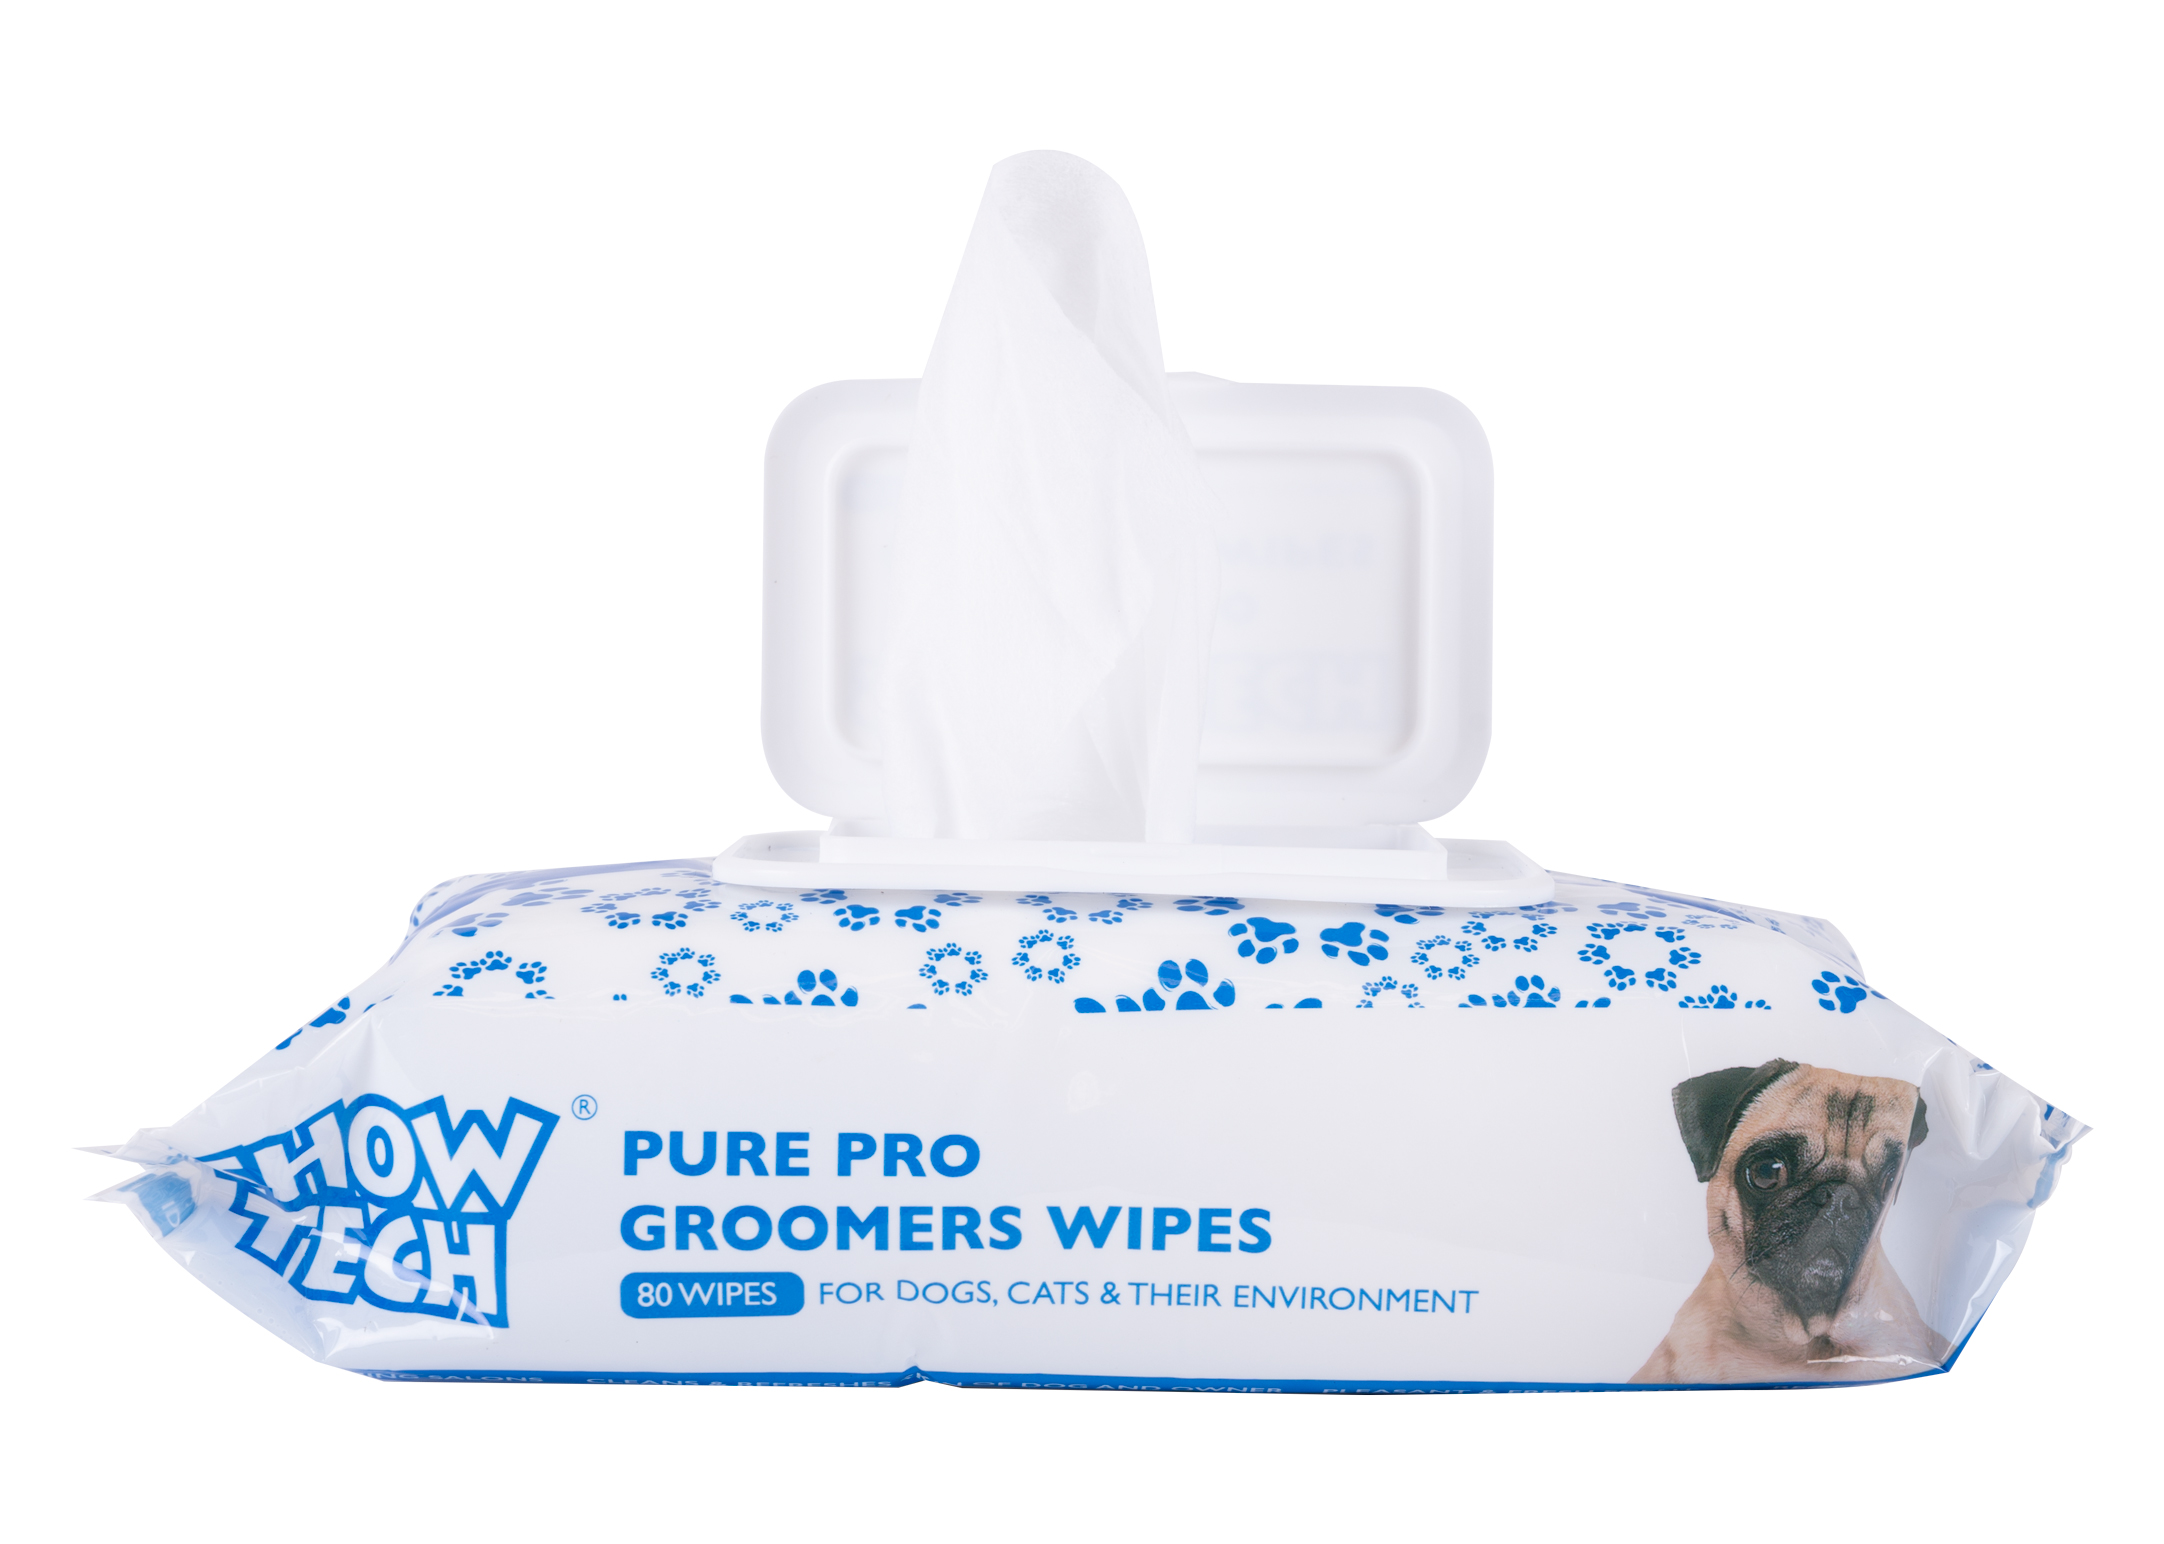 Show Tech Pure Pro Groomers Wipes - 80 pieces